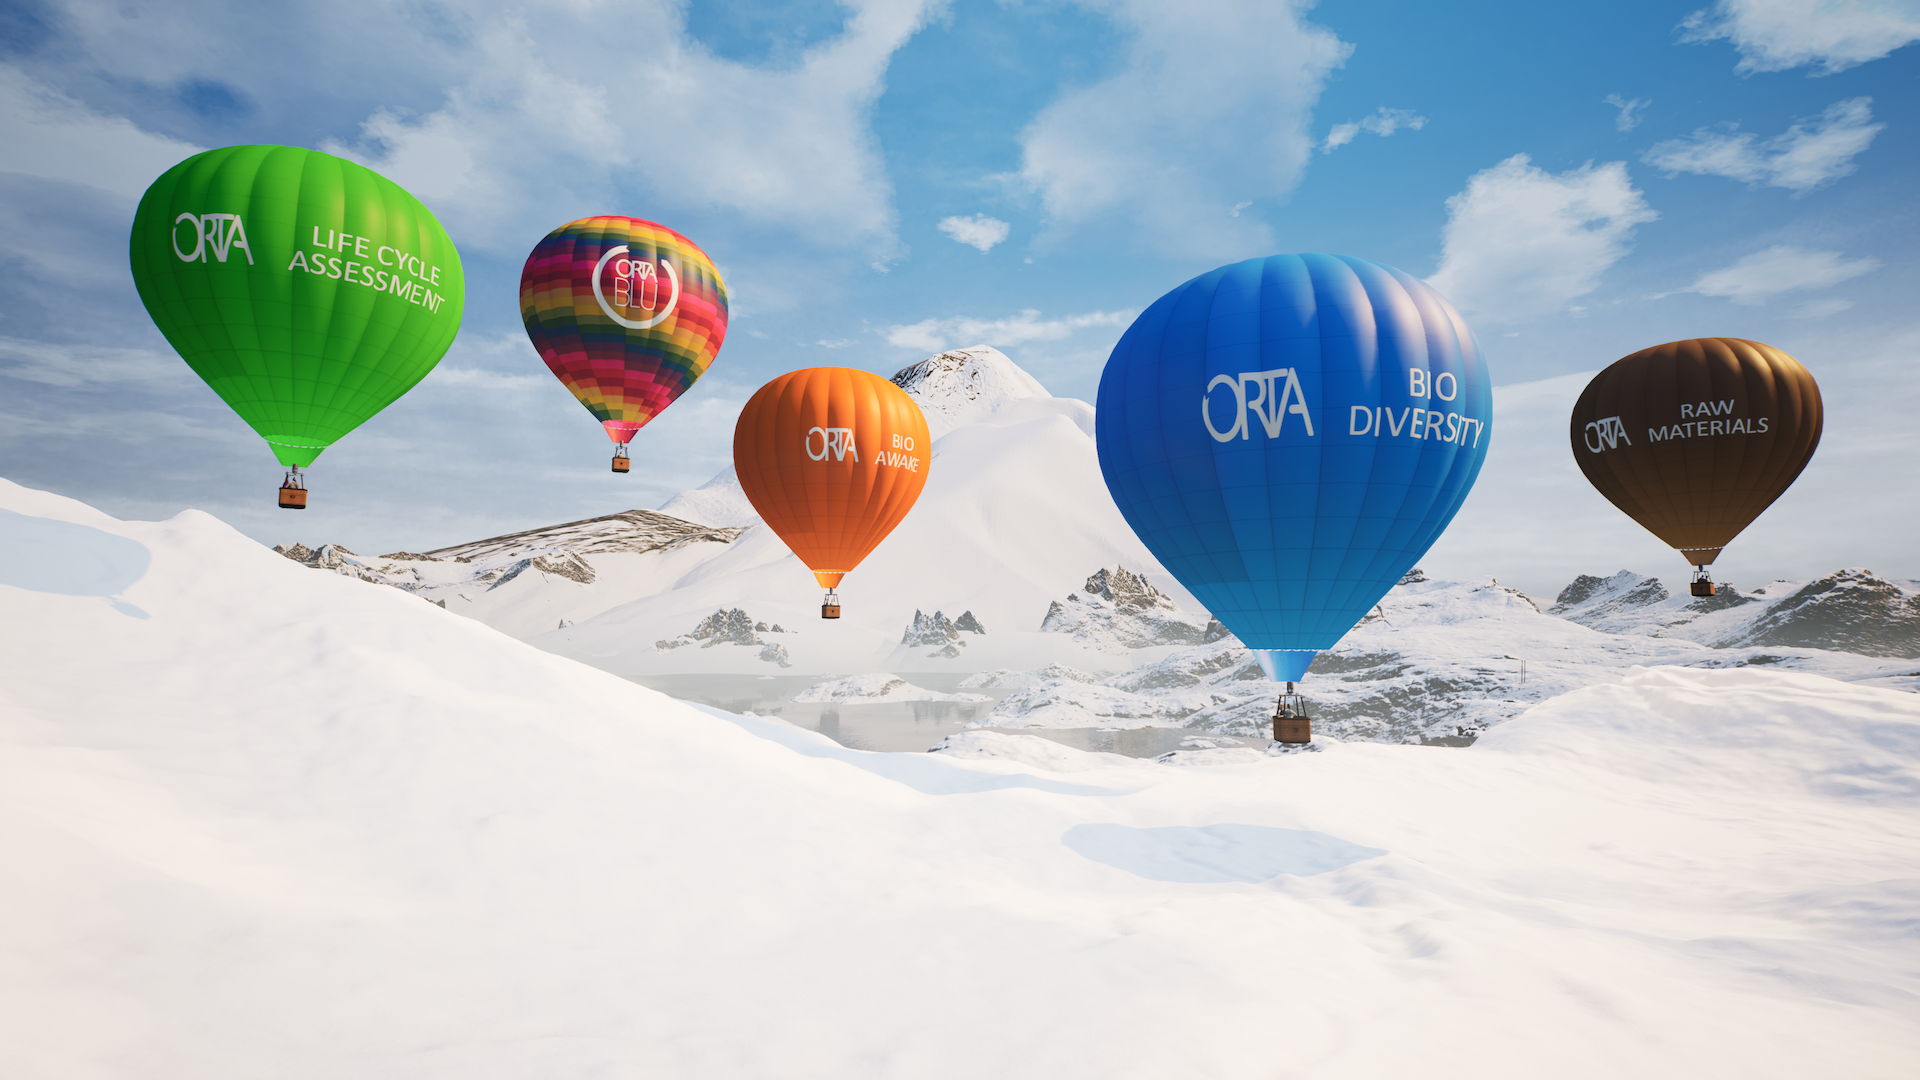 """Before guests """"take flight,"""" they must select one of five hot-air balloons for their tour, with each one featuring different collections, materials and offerings."""